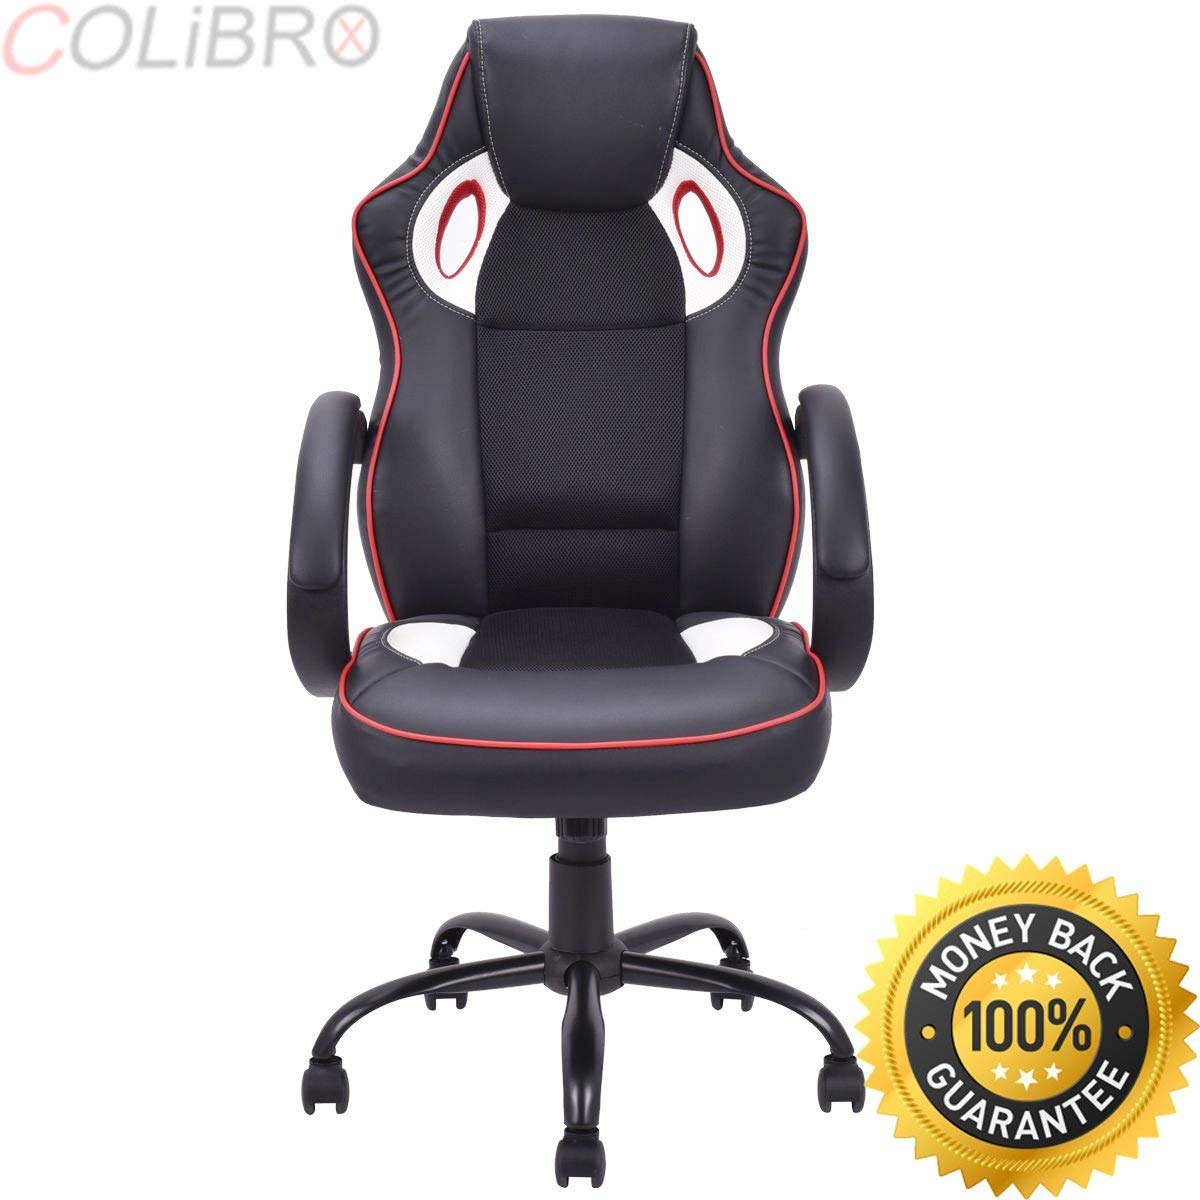 COLIBROX--Race Car Style Bucket Seat Office Chair Gaming Desk Computer Chair High Back New. high back race car style bucket seat office desk chair gaming chair.best amazon race car style office chair.